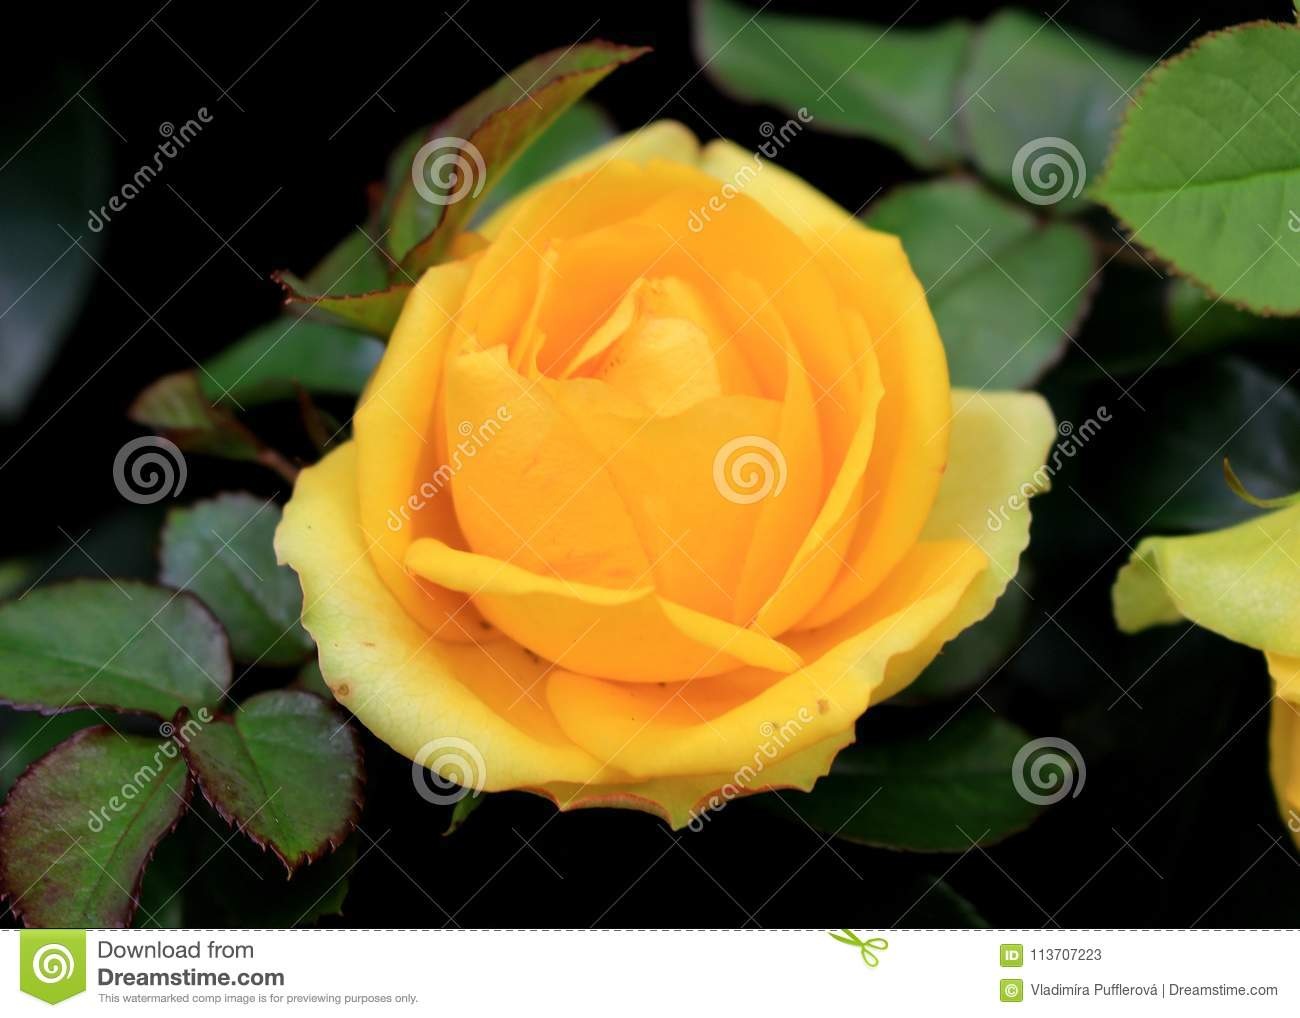 Yellow rose plant of rosaceae family with big yellow flowers stock yellow rose plant of rosaceae family with big yellow flowers mightylinksfo